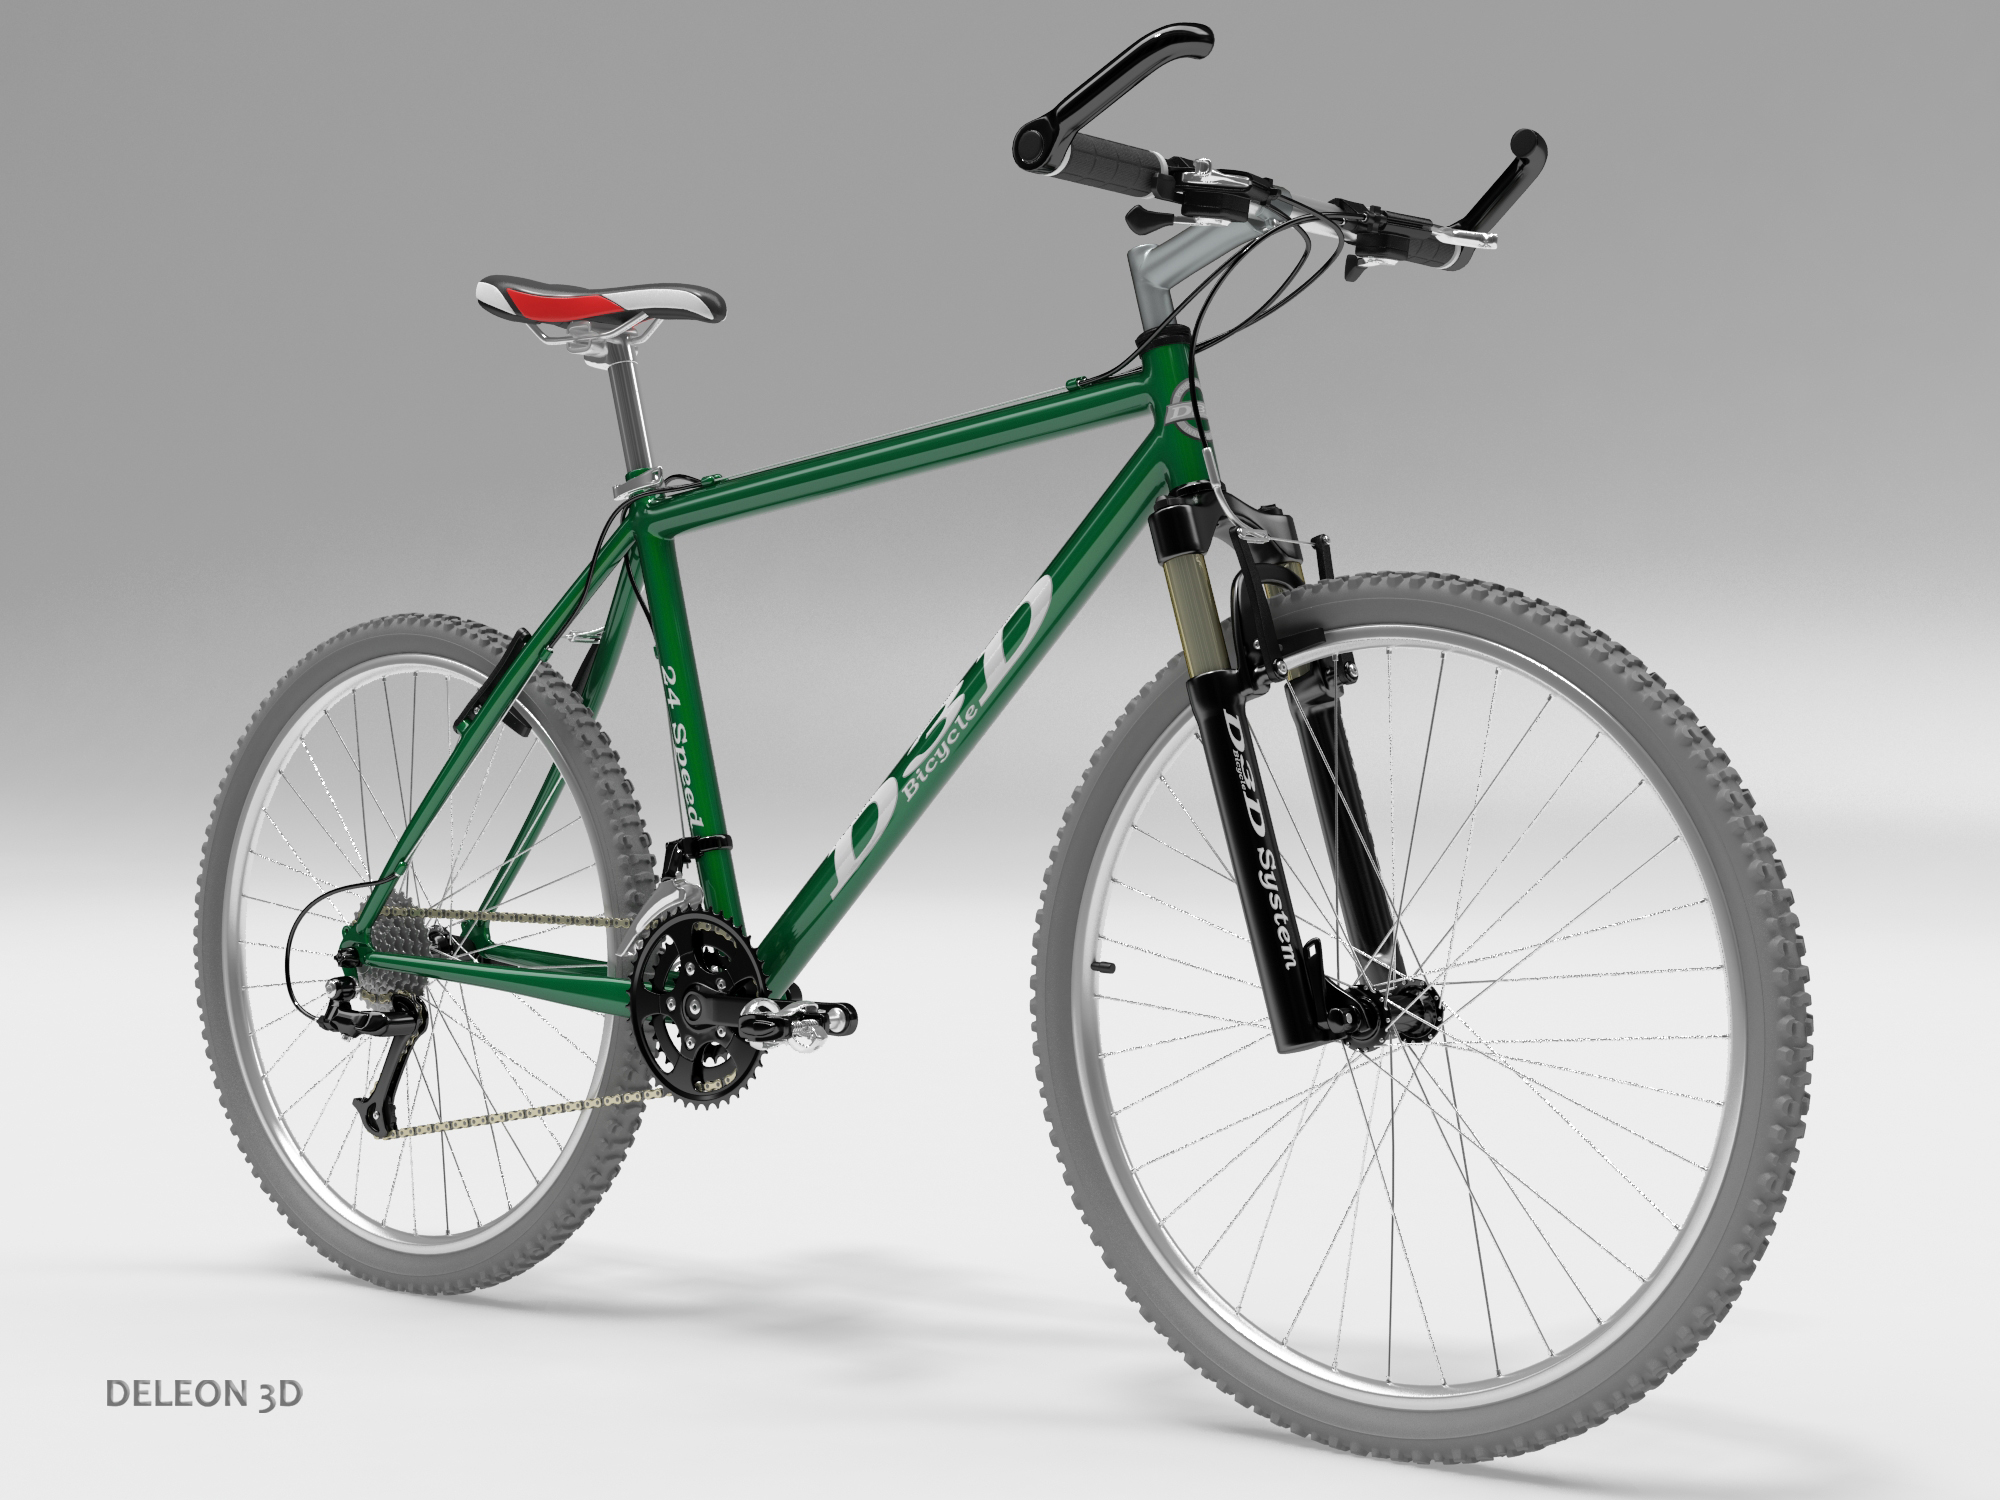 zeleni mountain bike 3d model max fbx c4d lxo obj 268300